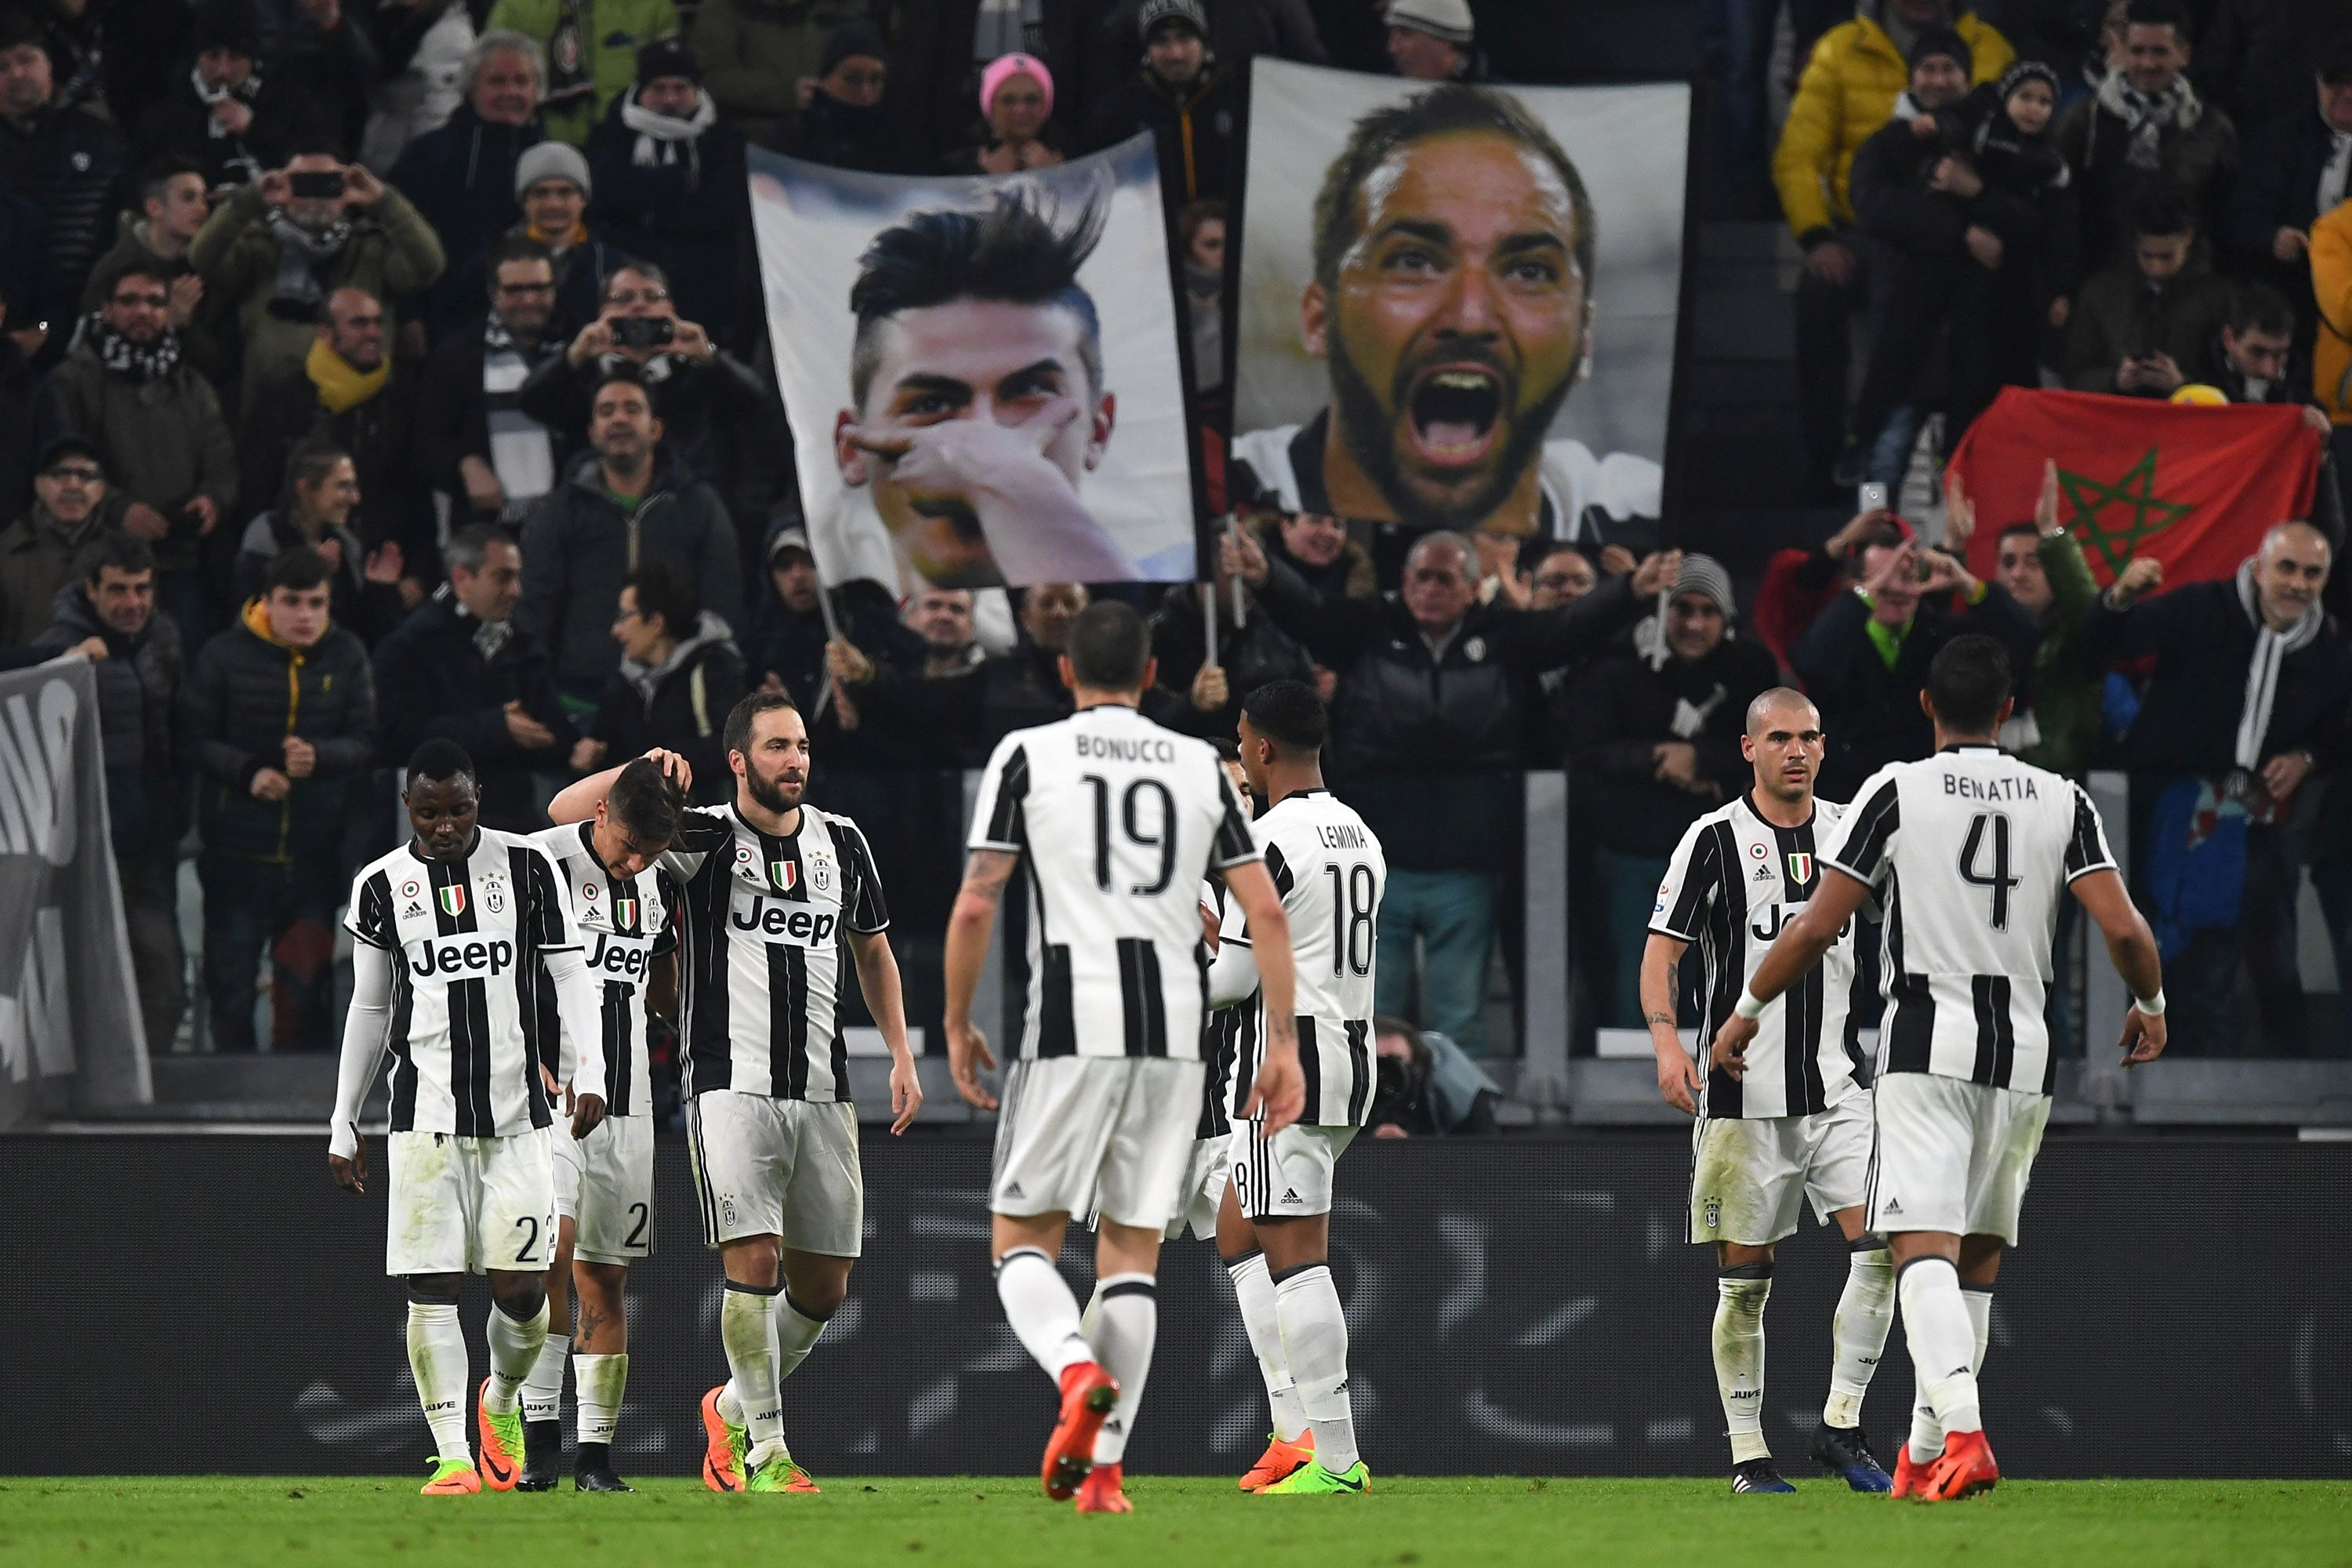 TURIN, ITALY - FEBRUARY 17:  Gonzalo Higuain (3th L) of Juventus FC celebrates his goal with team mate Paulo Dybala during the Serie A match between Juventus FC and US Citta di Palermo at Juventus Stadium on February 17, 2017 in Turin, Italy.  (Photo by Valerio Pennicino/Getty Images)